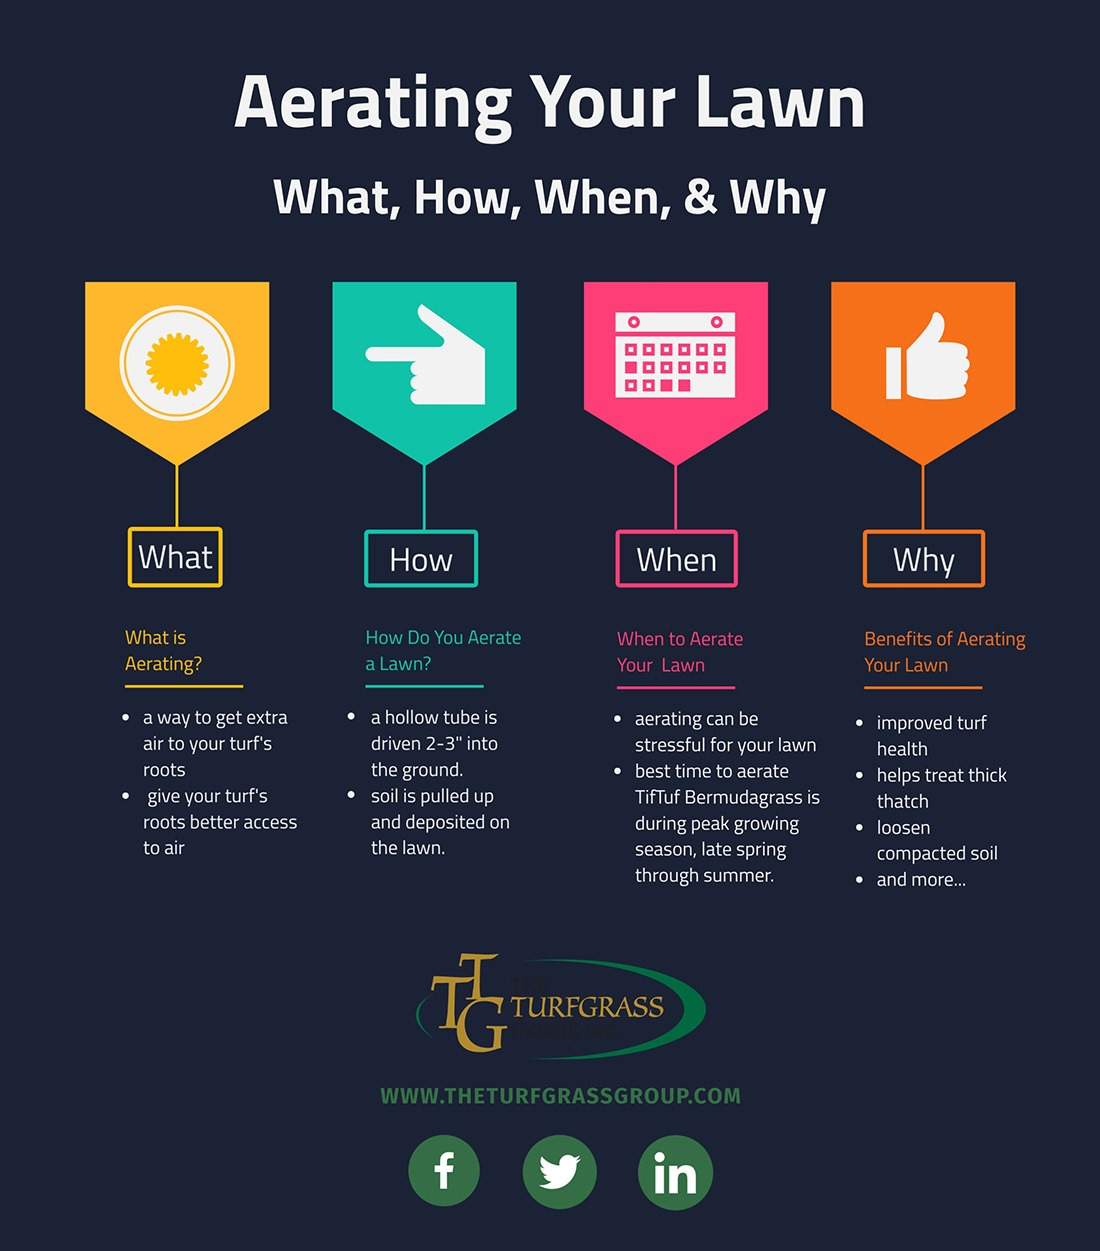 How to Aerate Your TifTuf Bermudagrass Lawn [infographic]